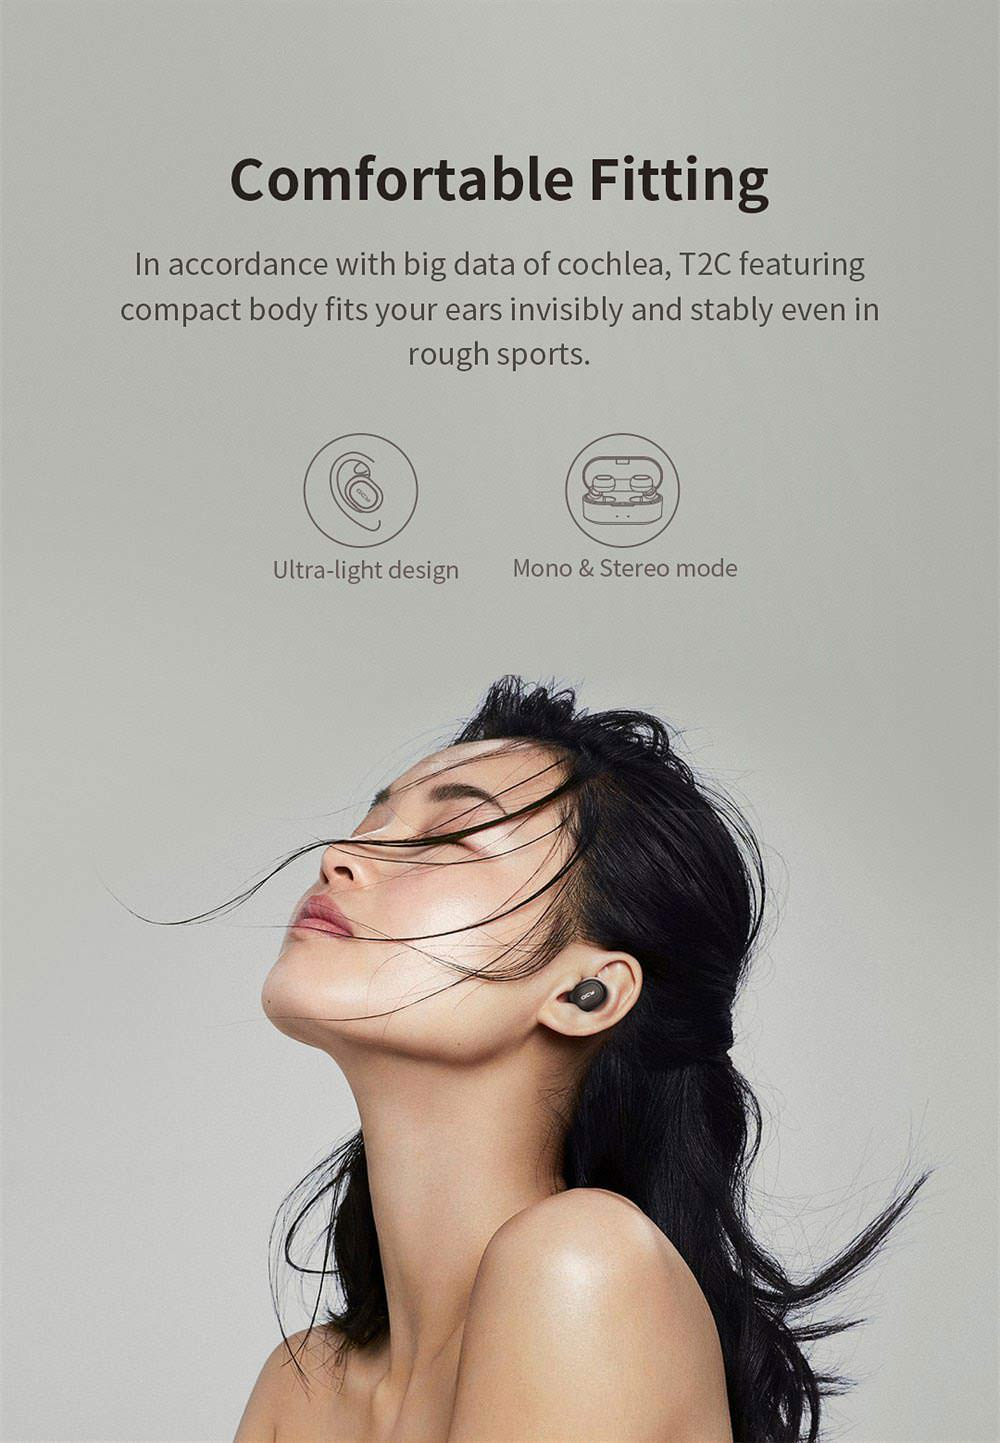 Bluetooth-50-Xiaomi-QCY-T2C-Mini-TWS-Earphone-HiFi-Magnetic-Bilateral-Call-Auto-Pairing-Stereo-Waterproof-Headphone-1433328